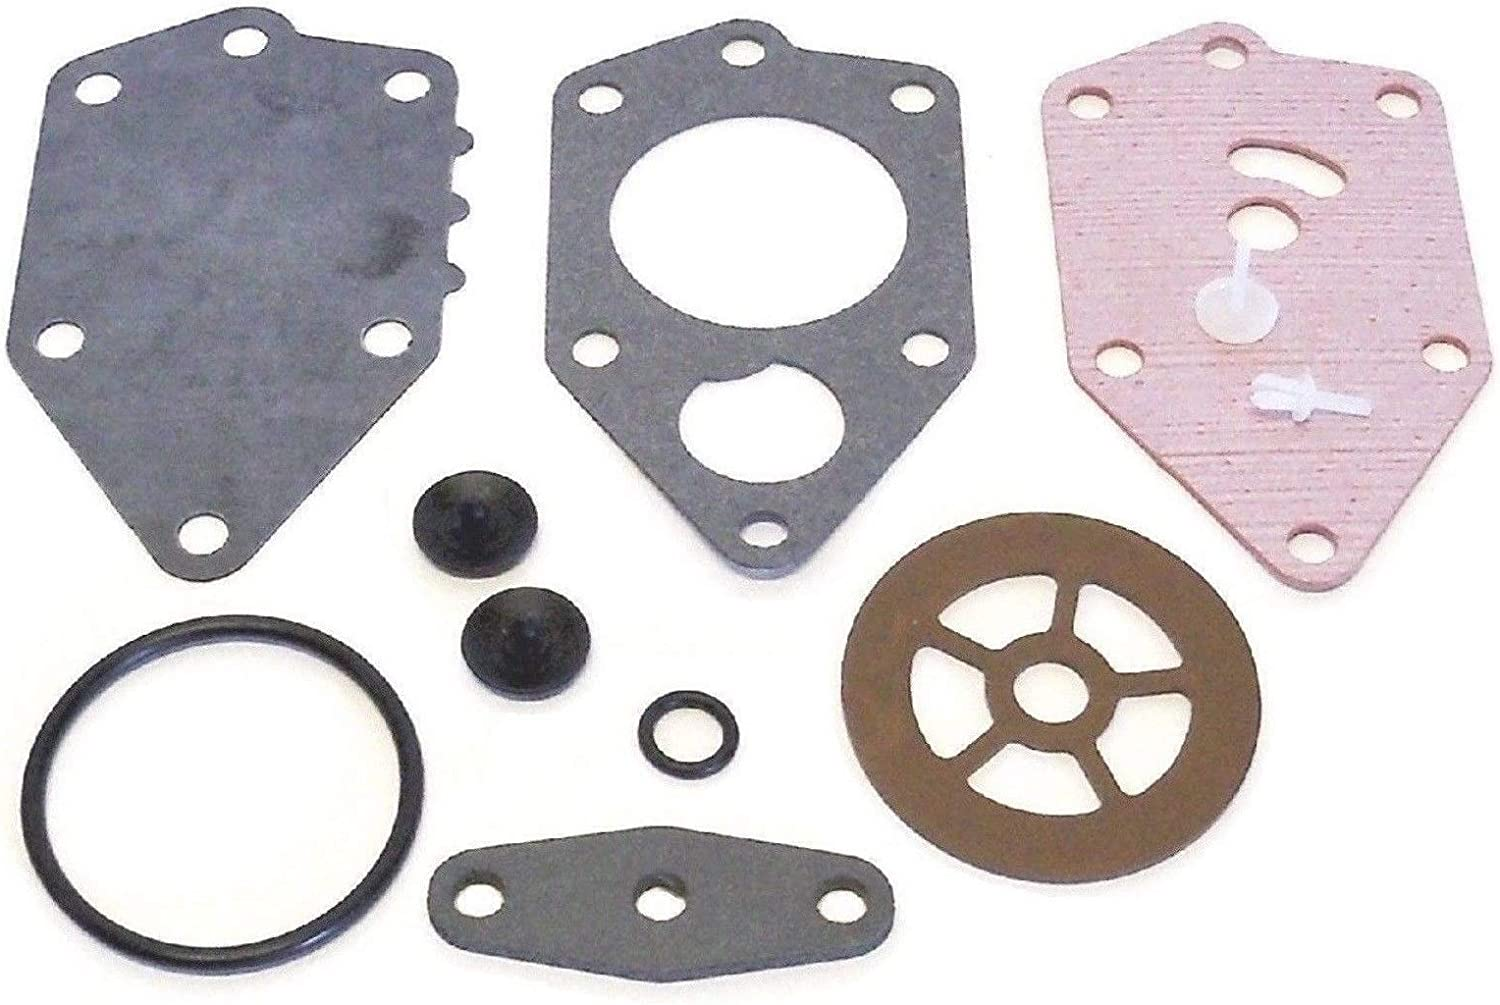 emp Made in USA Johnson Evinrude 9.9 15 20 25 28 30 40 45 50 88 100 125 hp 1990 & up Non VRO Fuel Pump Kit Replaces 438616 433519 18-7800 Read Product Description for Exact Applications